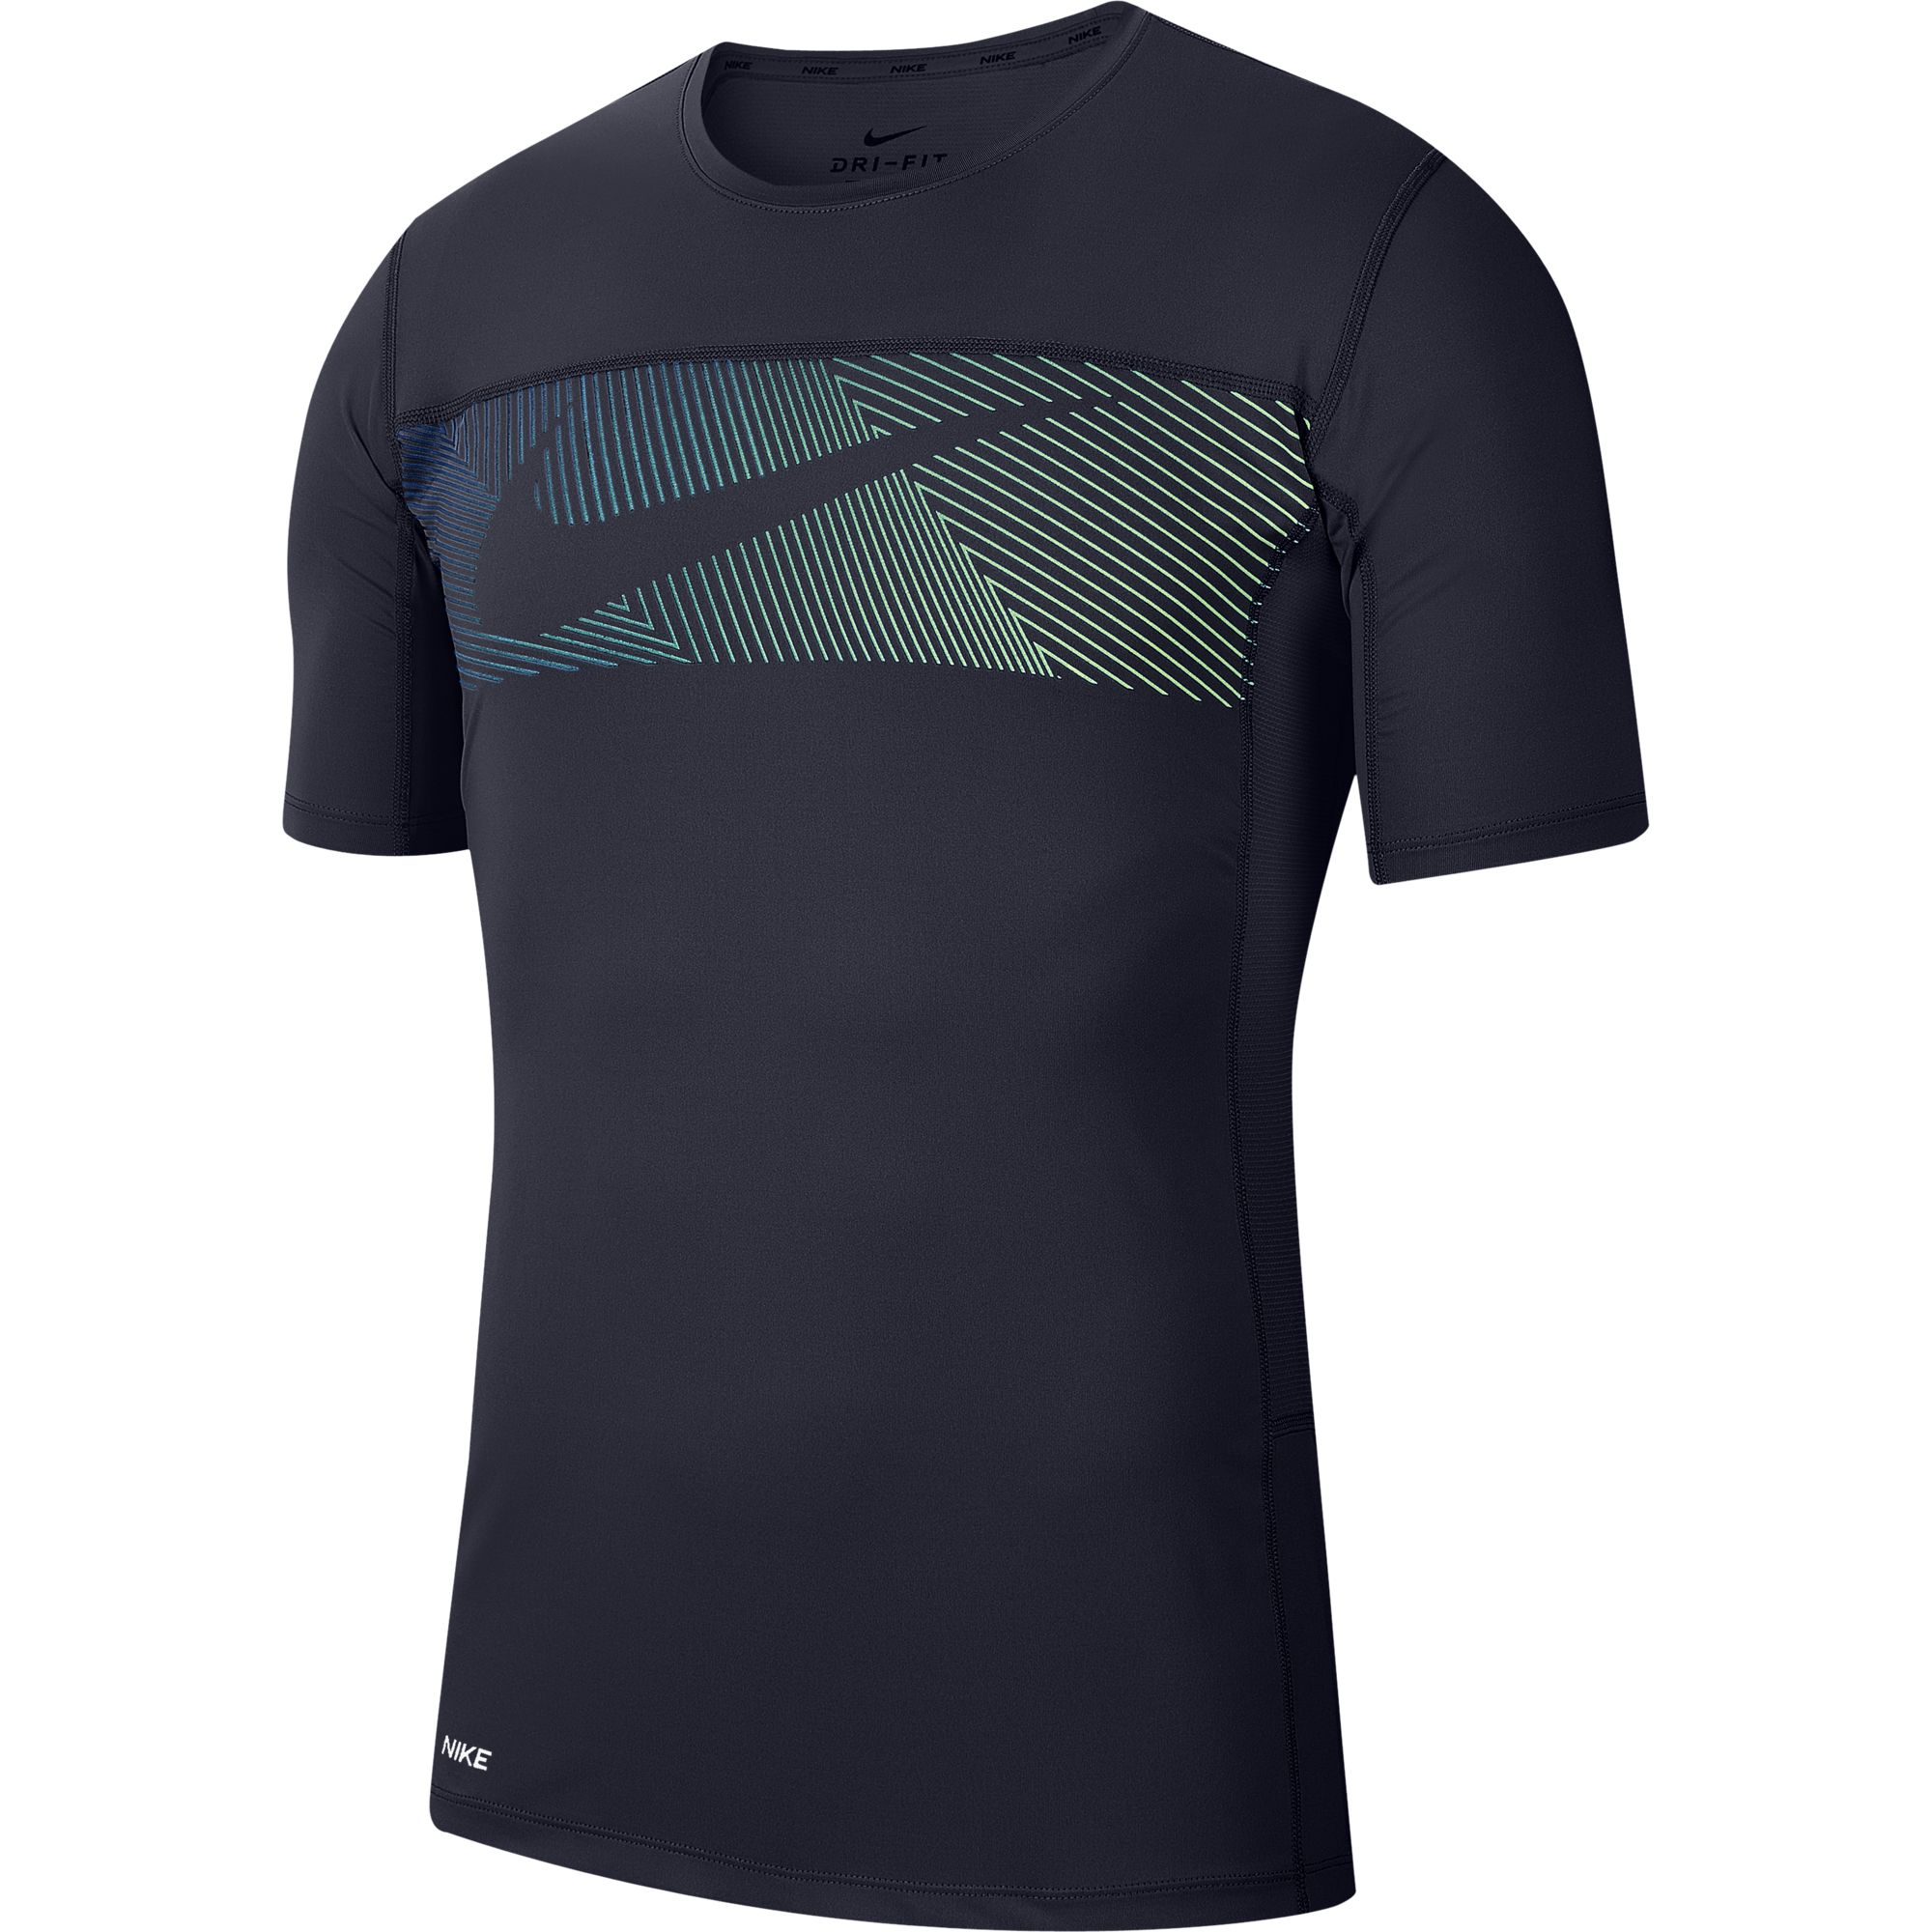 Men's Short-Sleeve Graphic Training Top, Navy, swatch